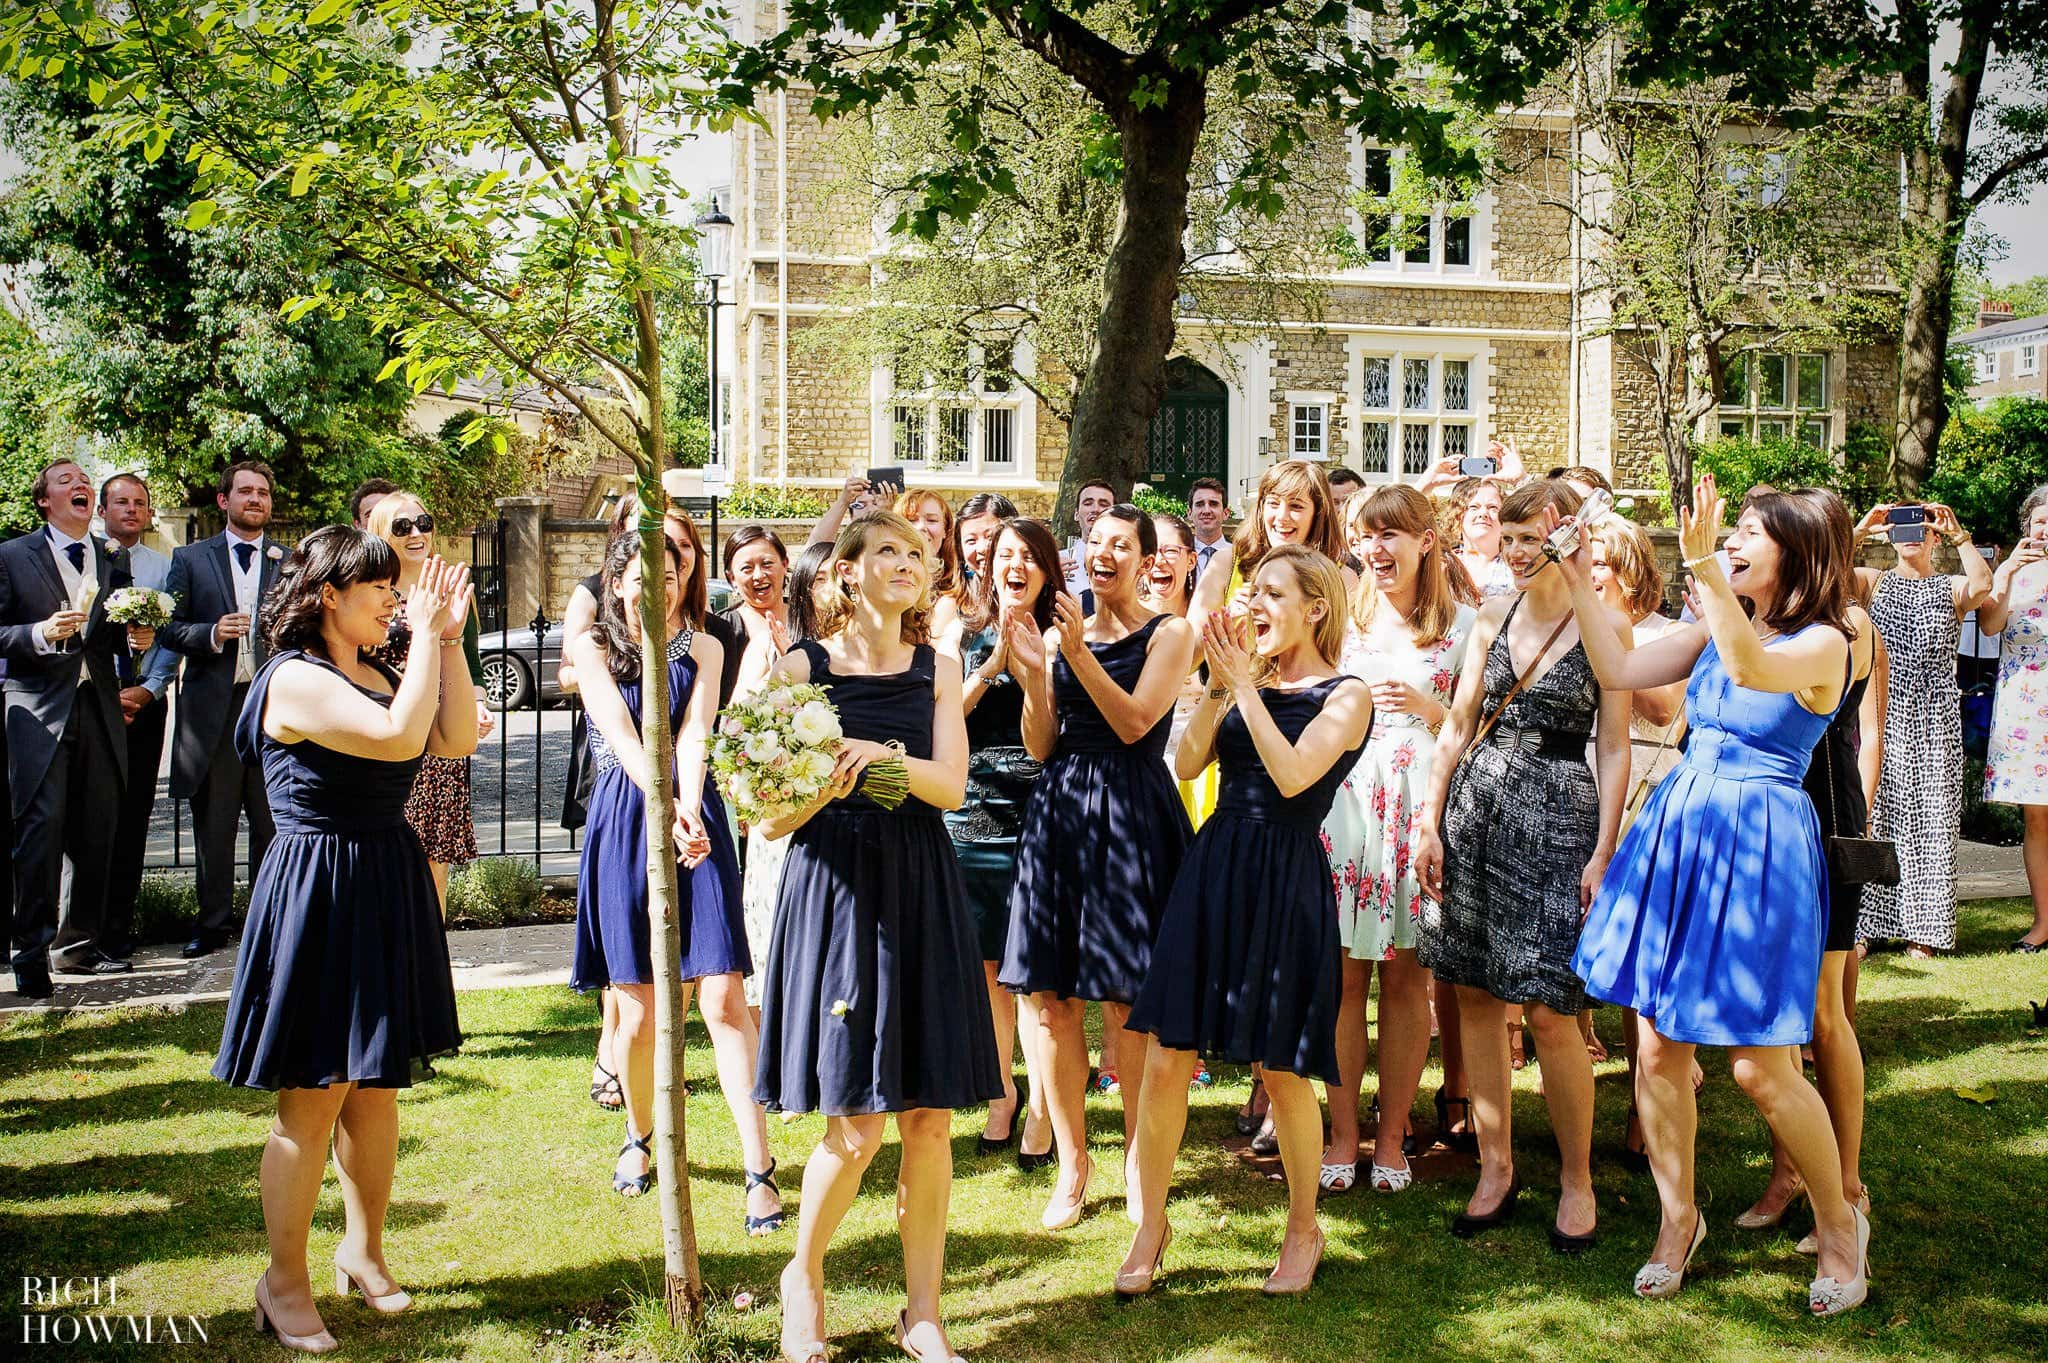 Notting Hill Wedding | Wedding Photographer London - Rich Howman 23